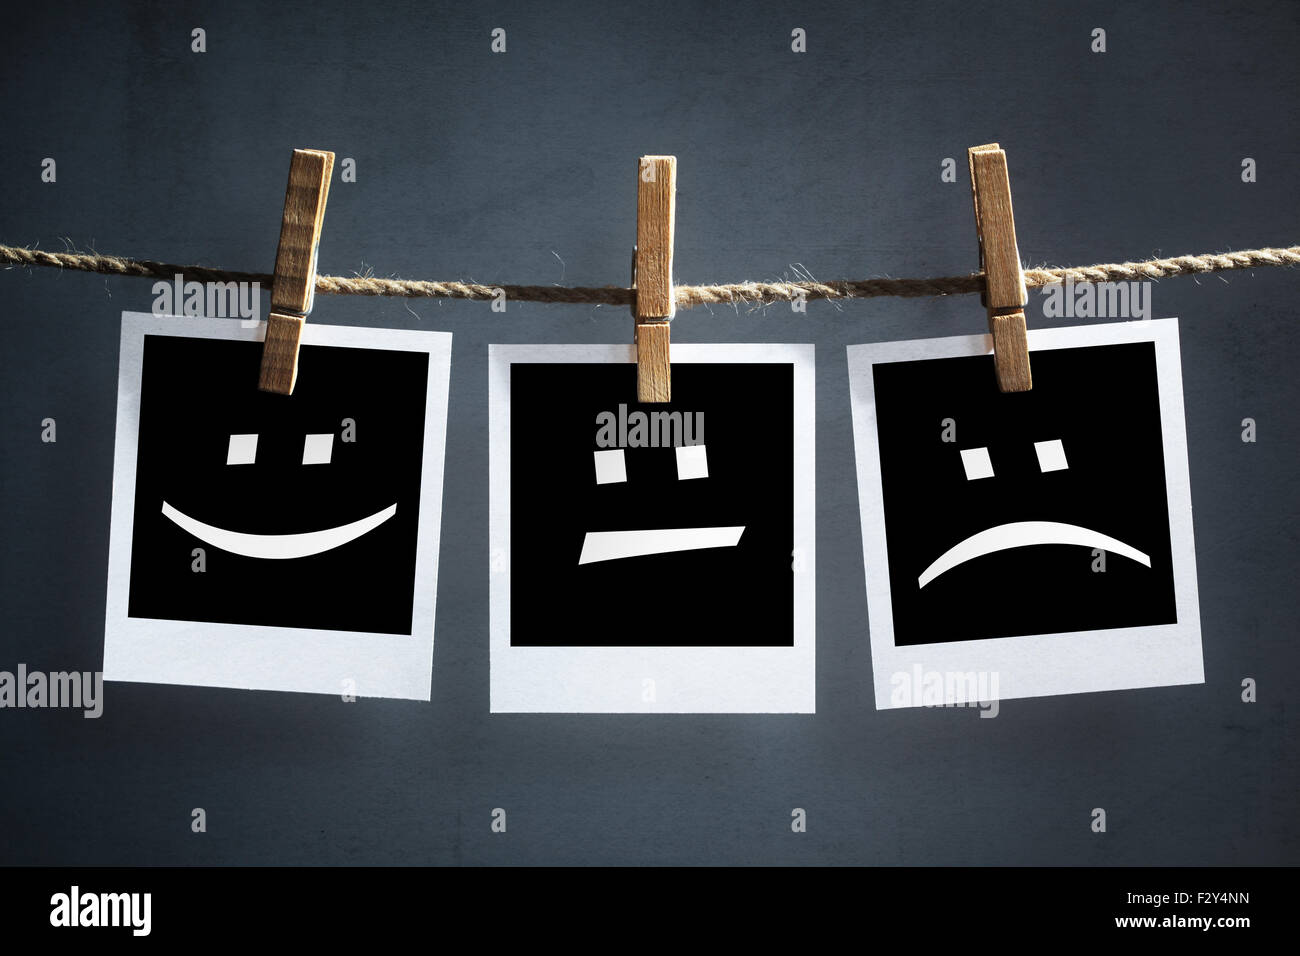 Happy, sad and neutral emoticons on instant print photographs - Stock Image